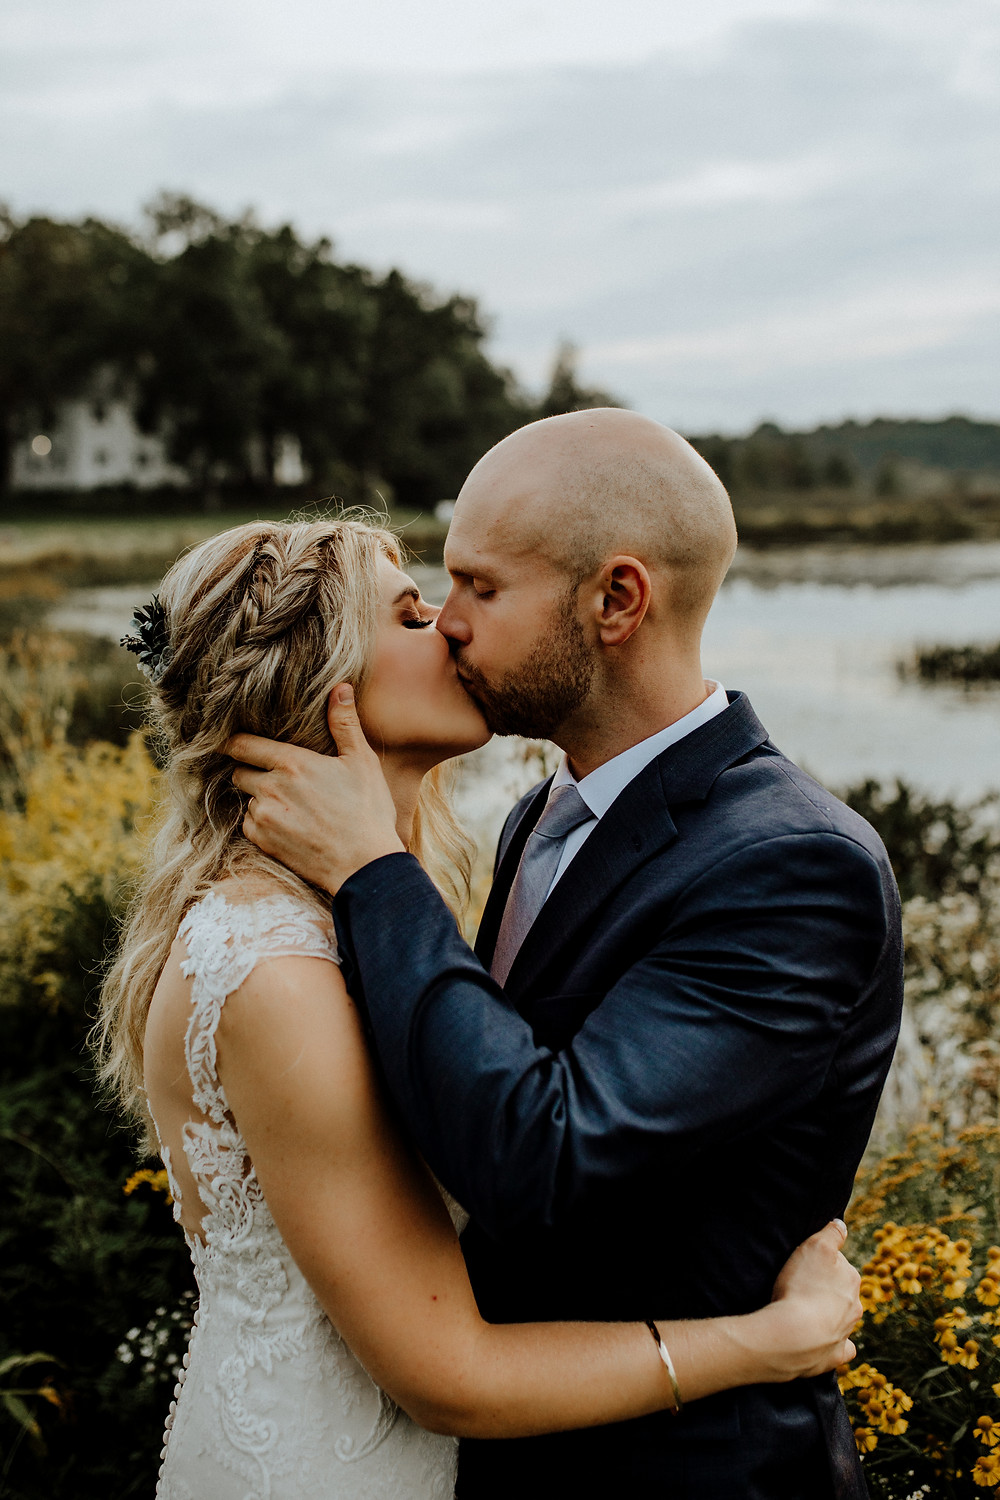 artistic wedding photo taken by detroit area elopement photographer, little blue bird photography, at waldenwoods in howell, michigan.